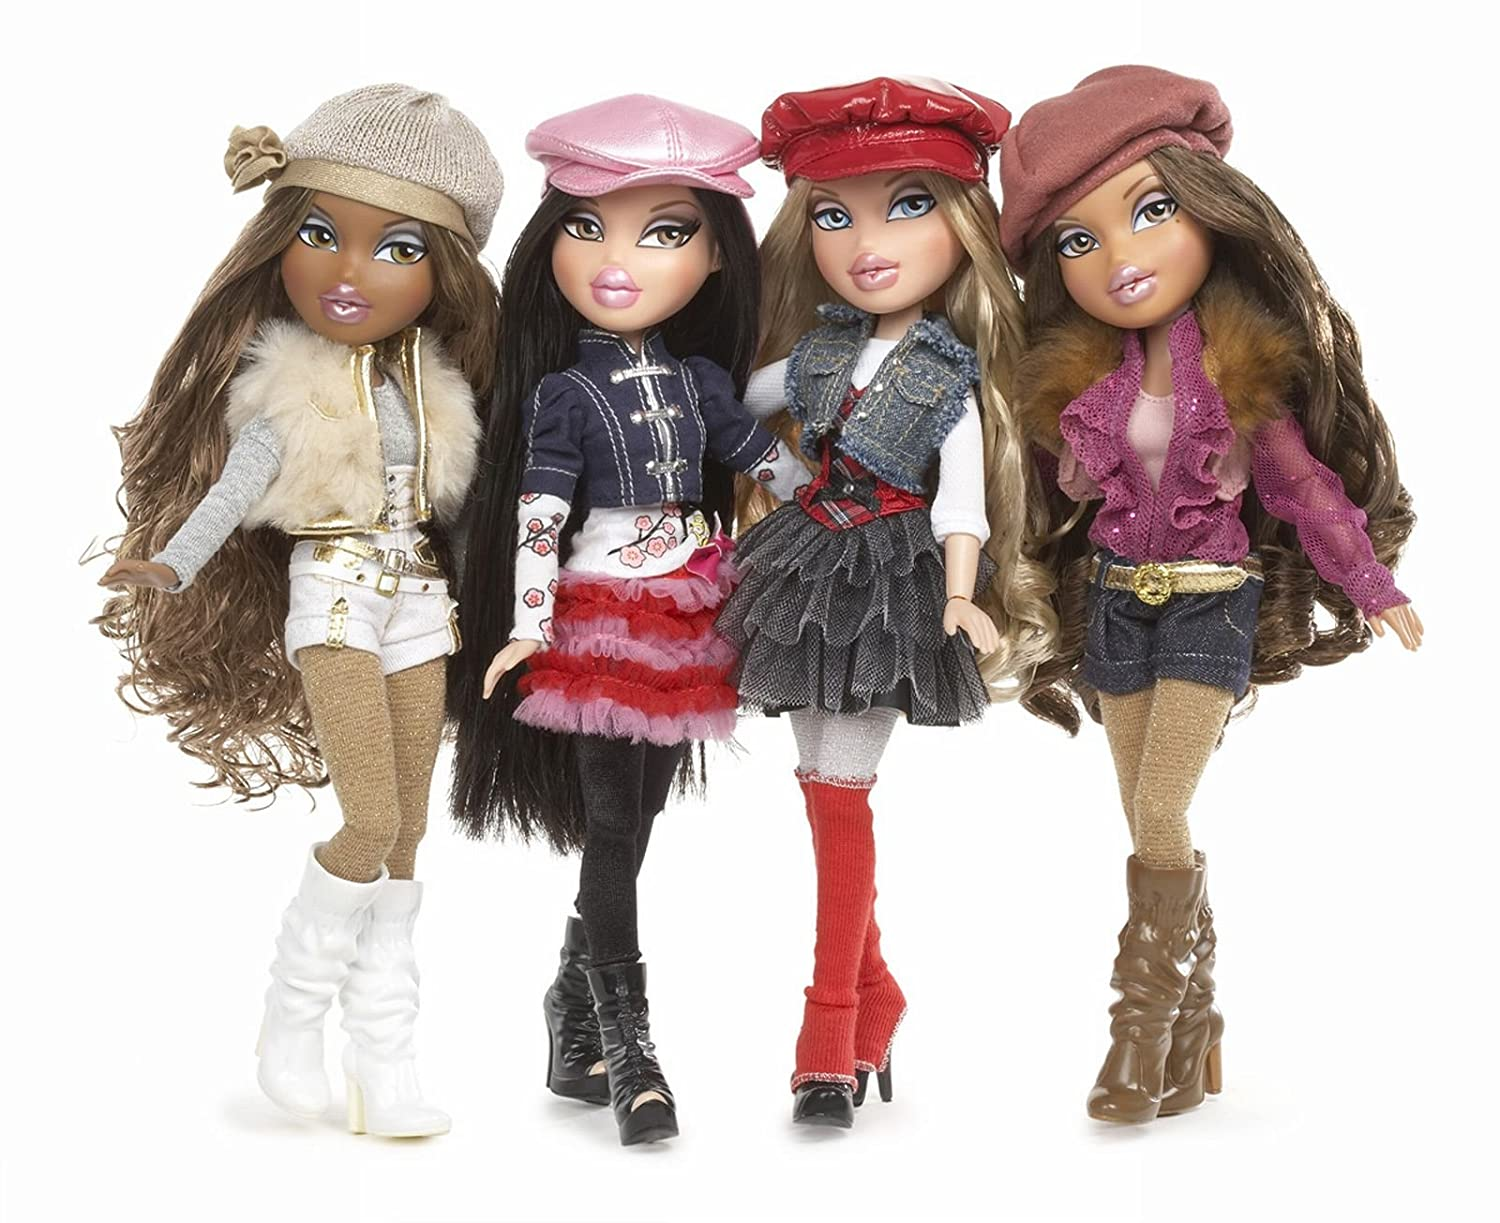 Uncategorized Bratz Doll Images amazon com bratz party doll yasmin toys games